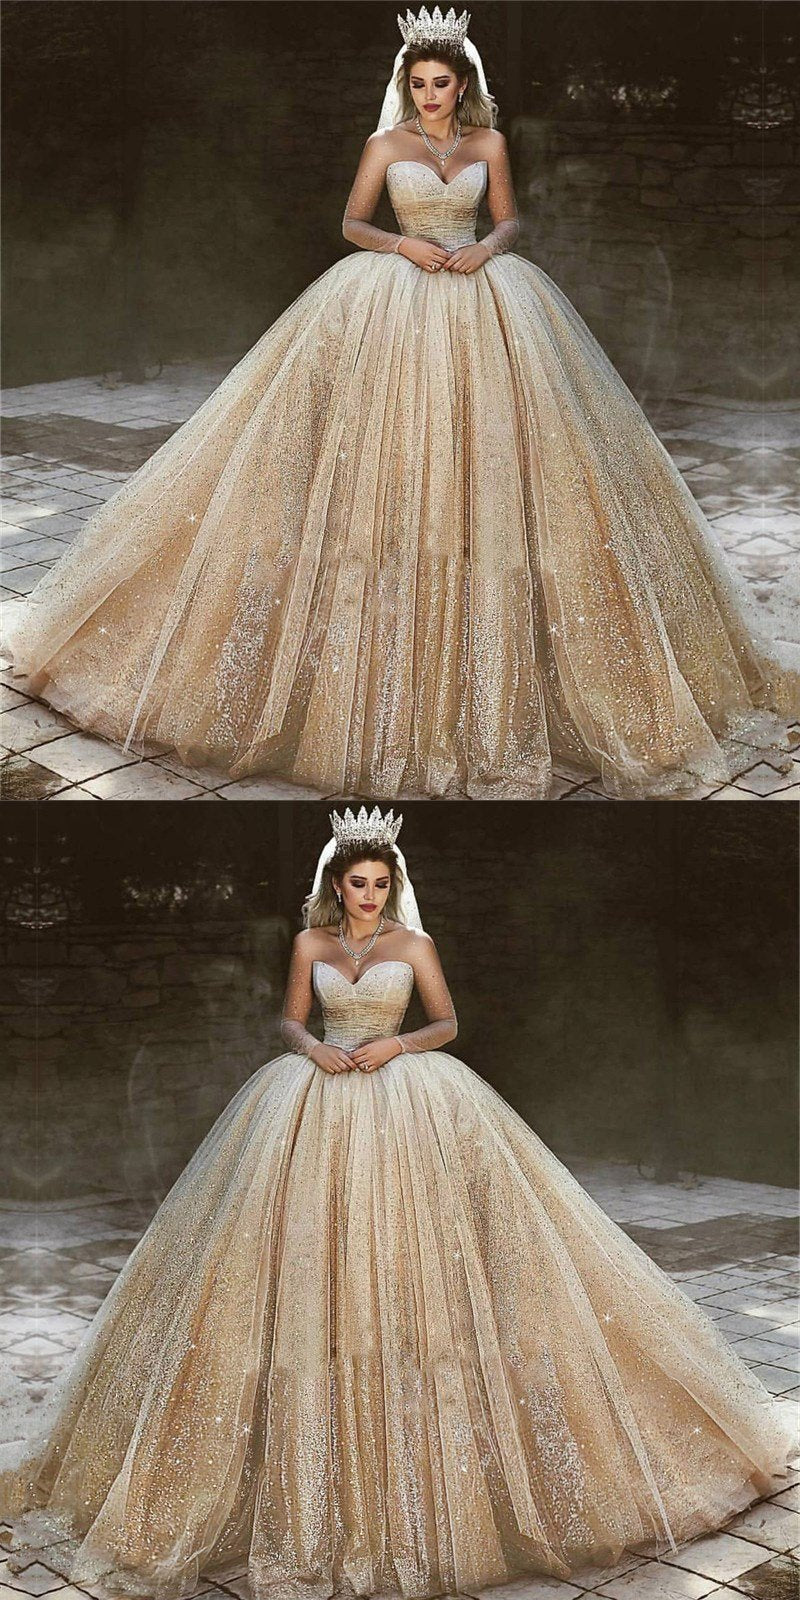 Gold Wedding Dresses.Long Gorgeous Luxury Champagne Gold Wedding Dresses Long Sleeves Sequins Princess Bridal Ball Gown Wd0349